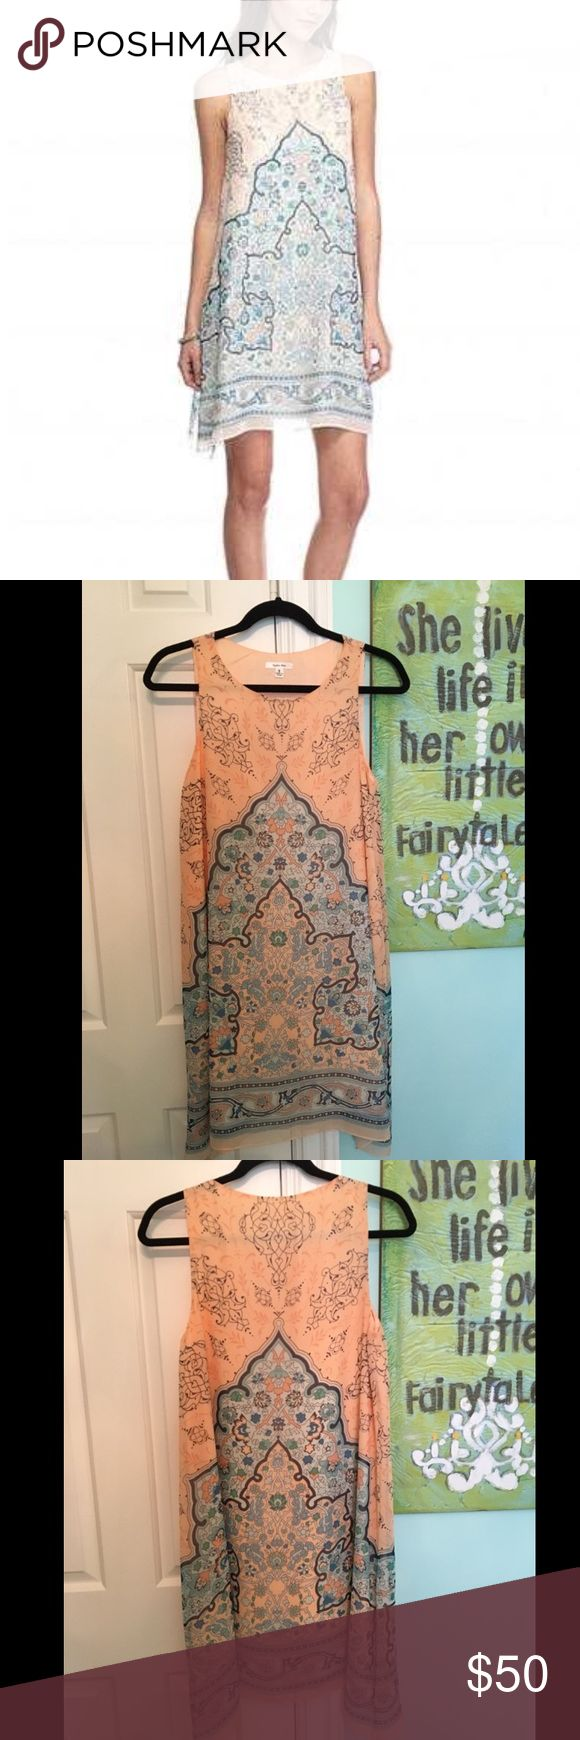 Softie Max Coral & Blue Printed Shift Dress Adorable and flowy Sofie Max shift dress! Super comfortable to wear and fully-lined! Worn once to a wedding. Smoke free home. Sofie Max Dresses Asymmetrical